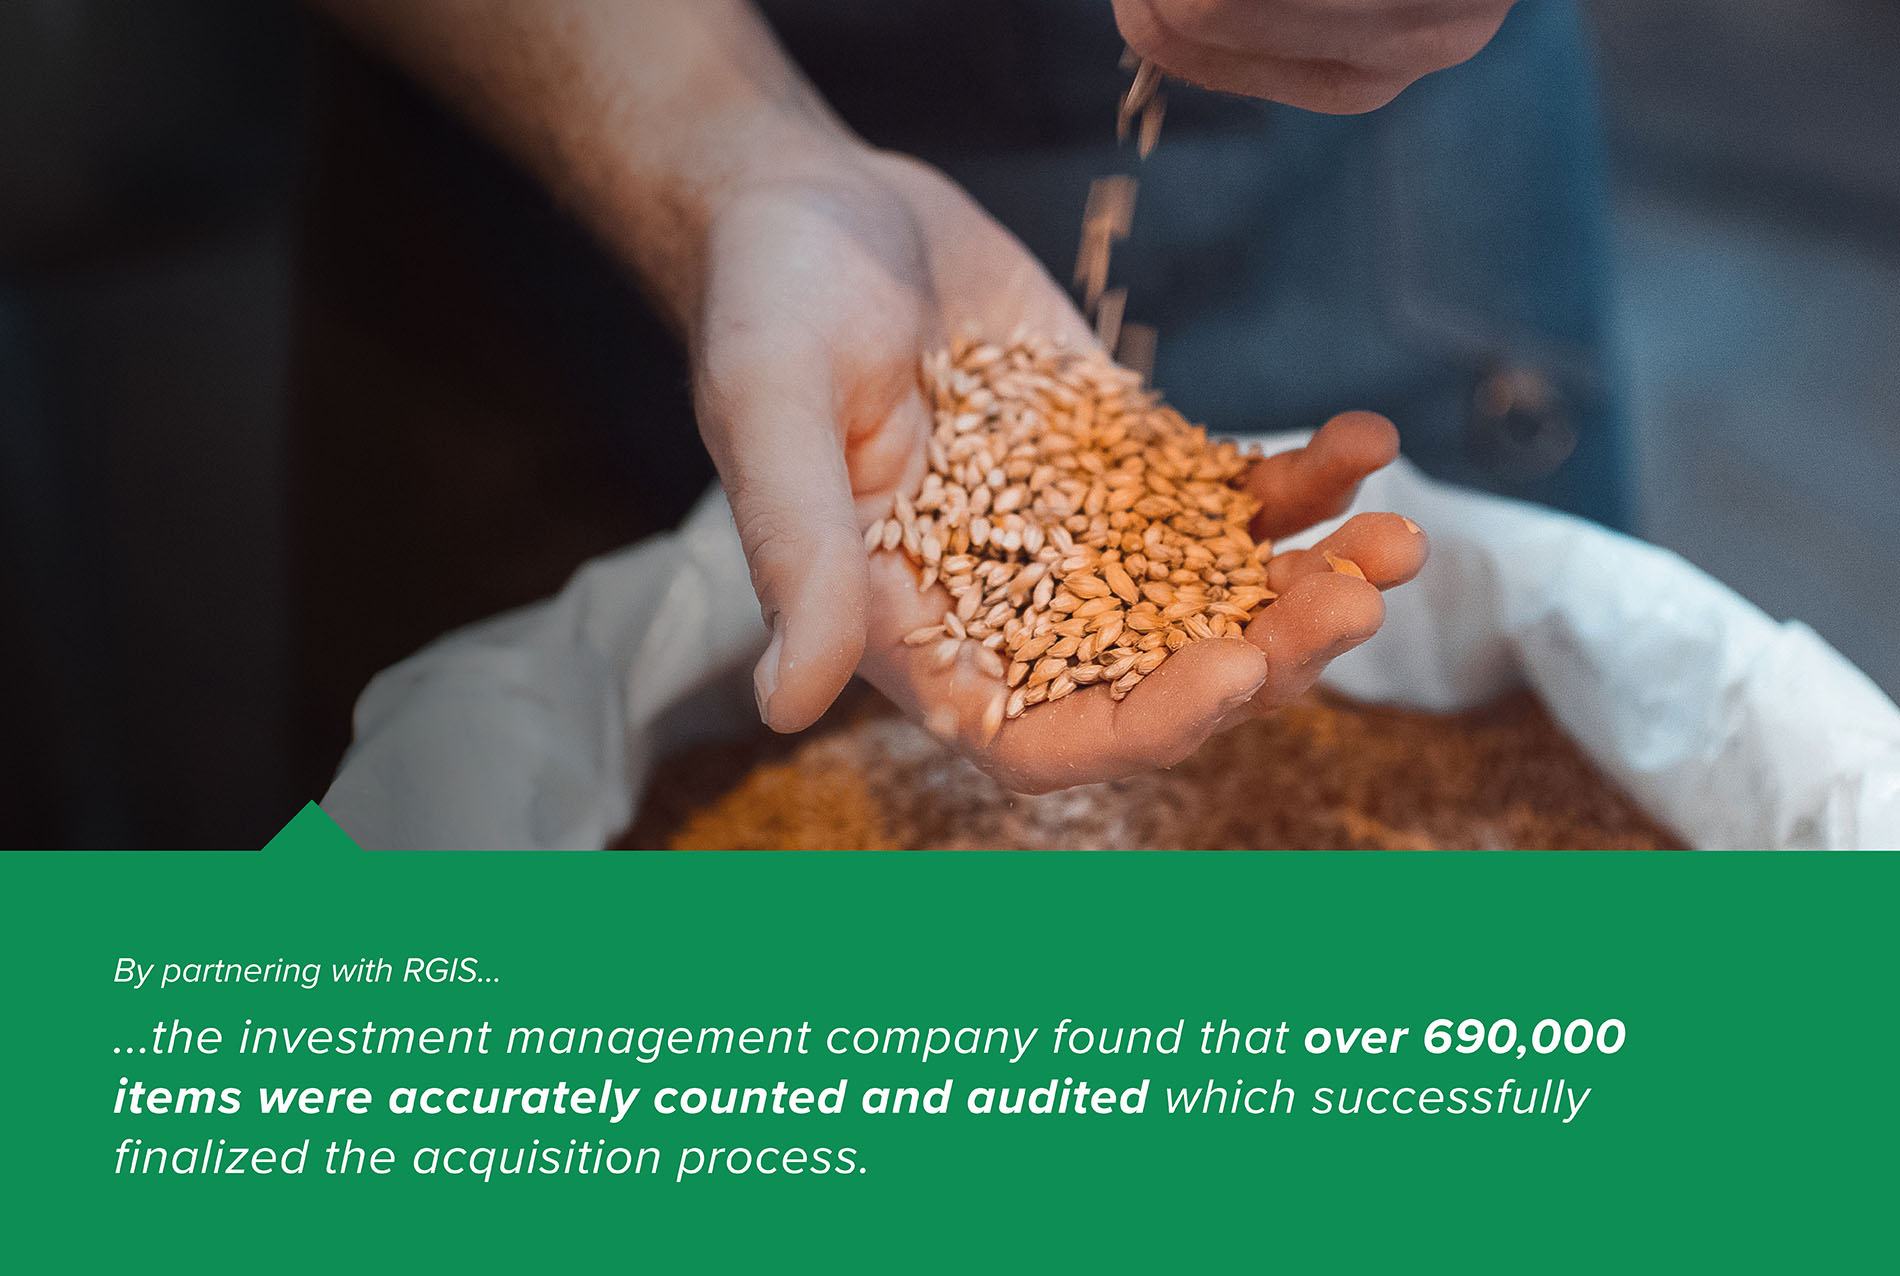 Acquisition Inventory and Damaged Product Audit of Agro Products